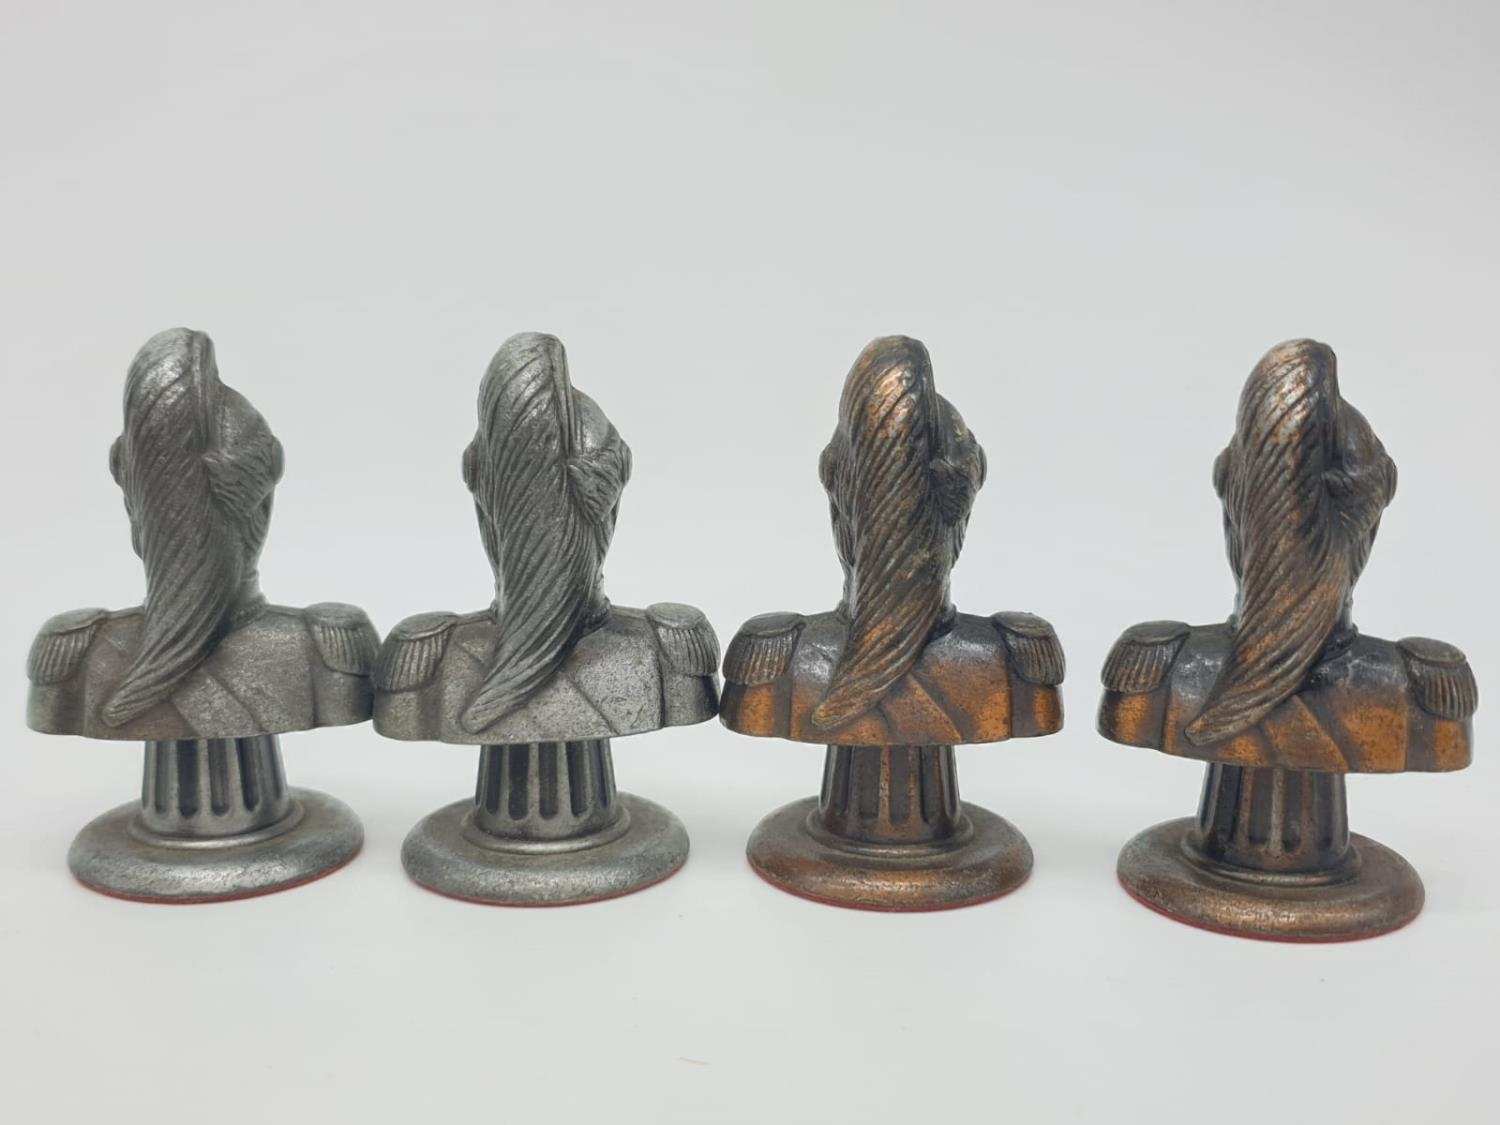 Metal CHESS SET Napoleonic Themed pieces. Napoleon 7.5 cm tall. Play on a square 3.5 cm. - Image 36 of 38